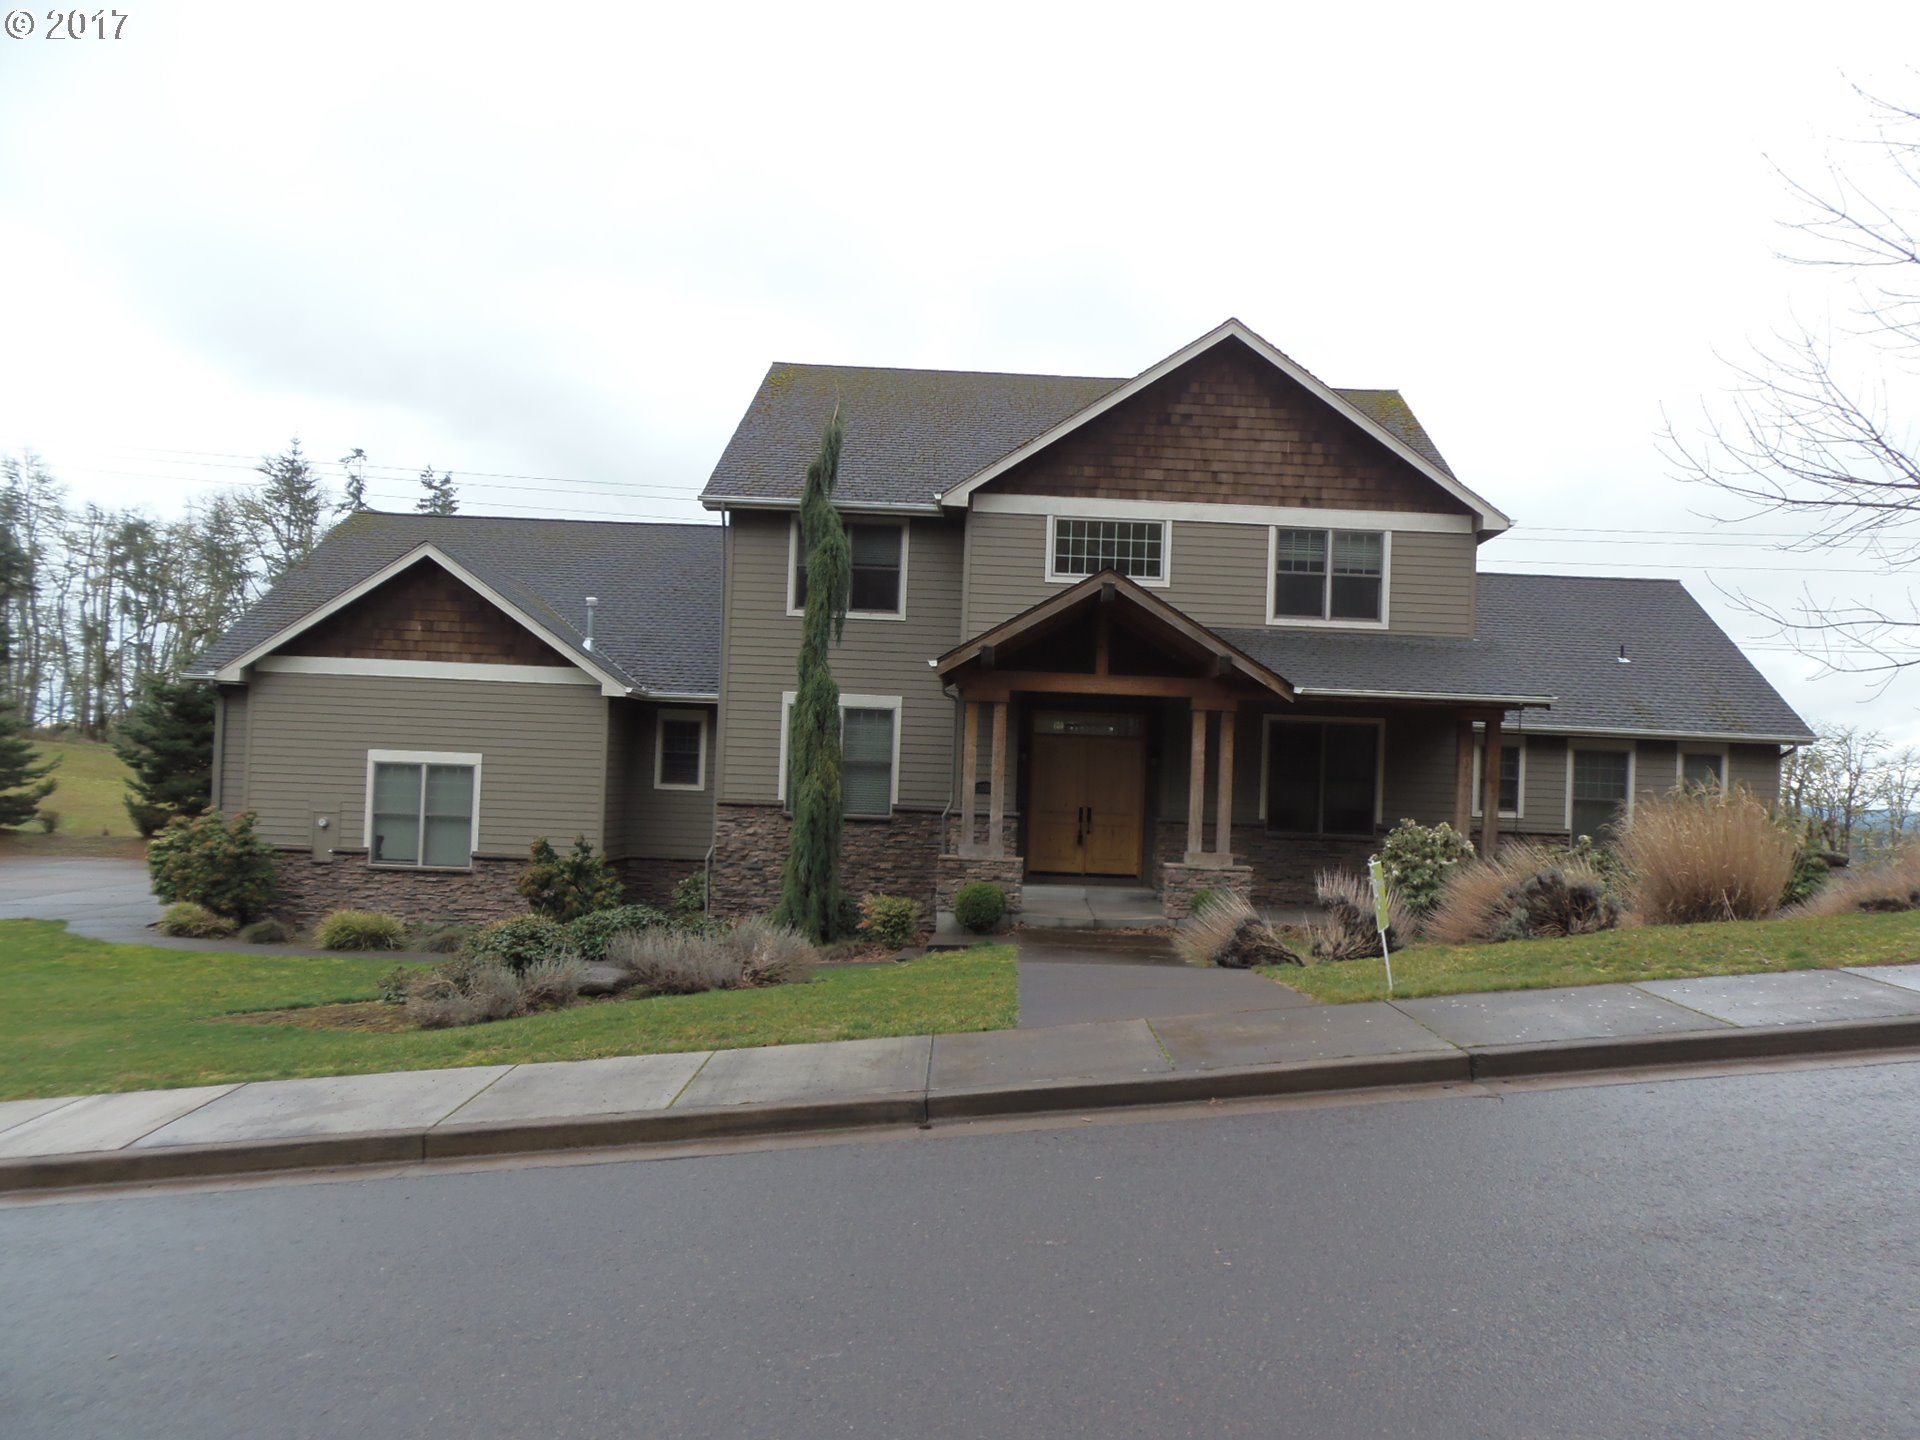 3160 SUMMIT SKY BLVD, Eugene, OR 97405